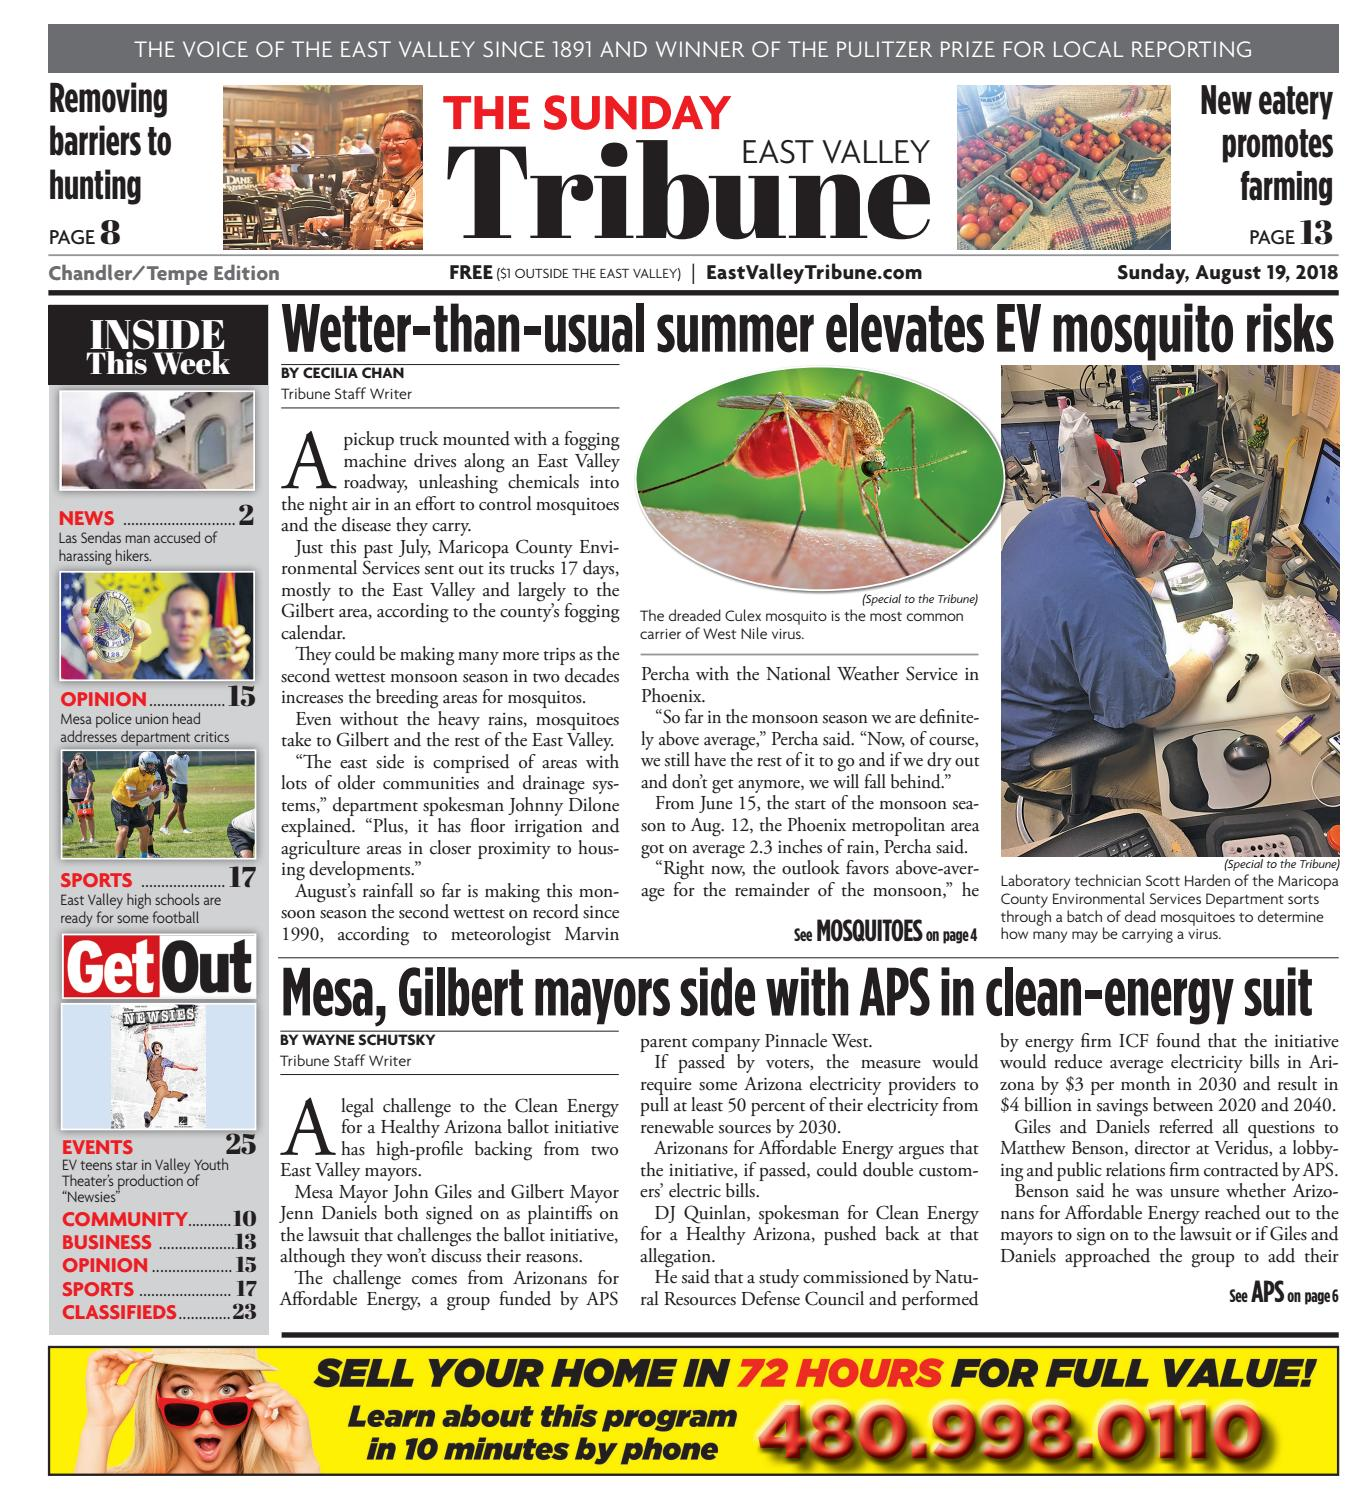 East Valley Tribune - Chandler/Tempe August 19, 2018